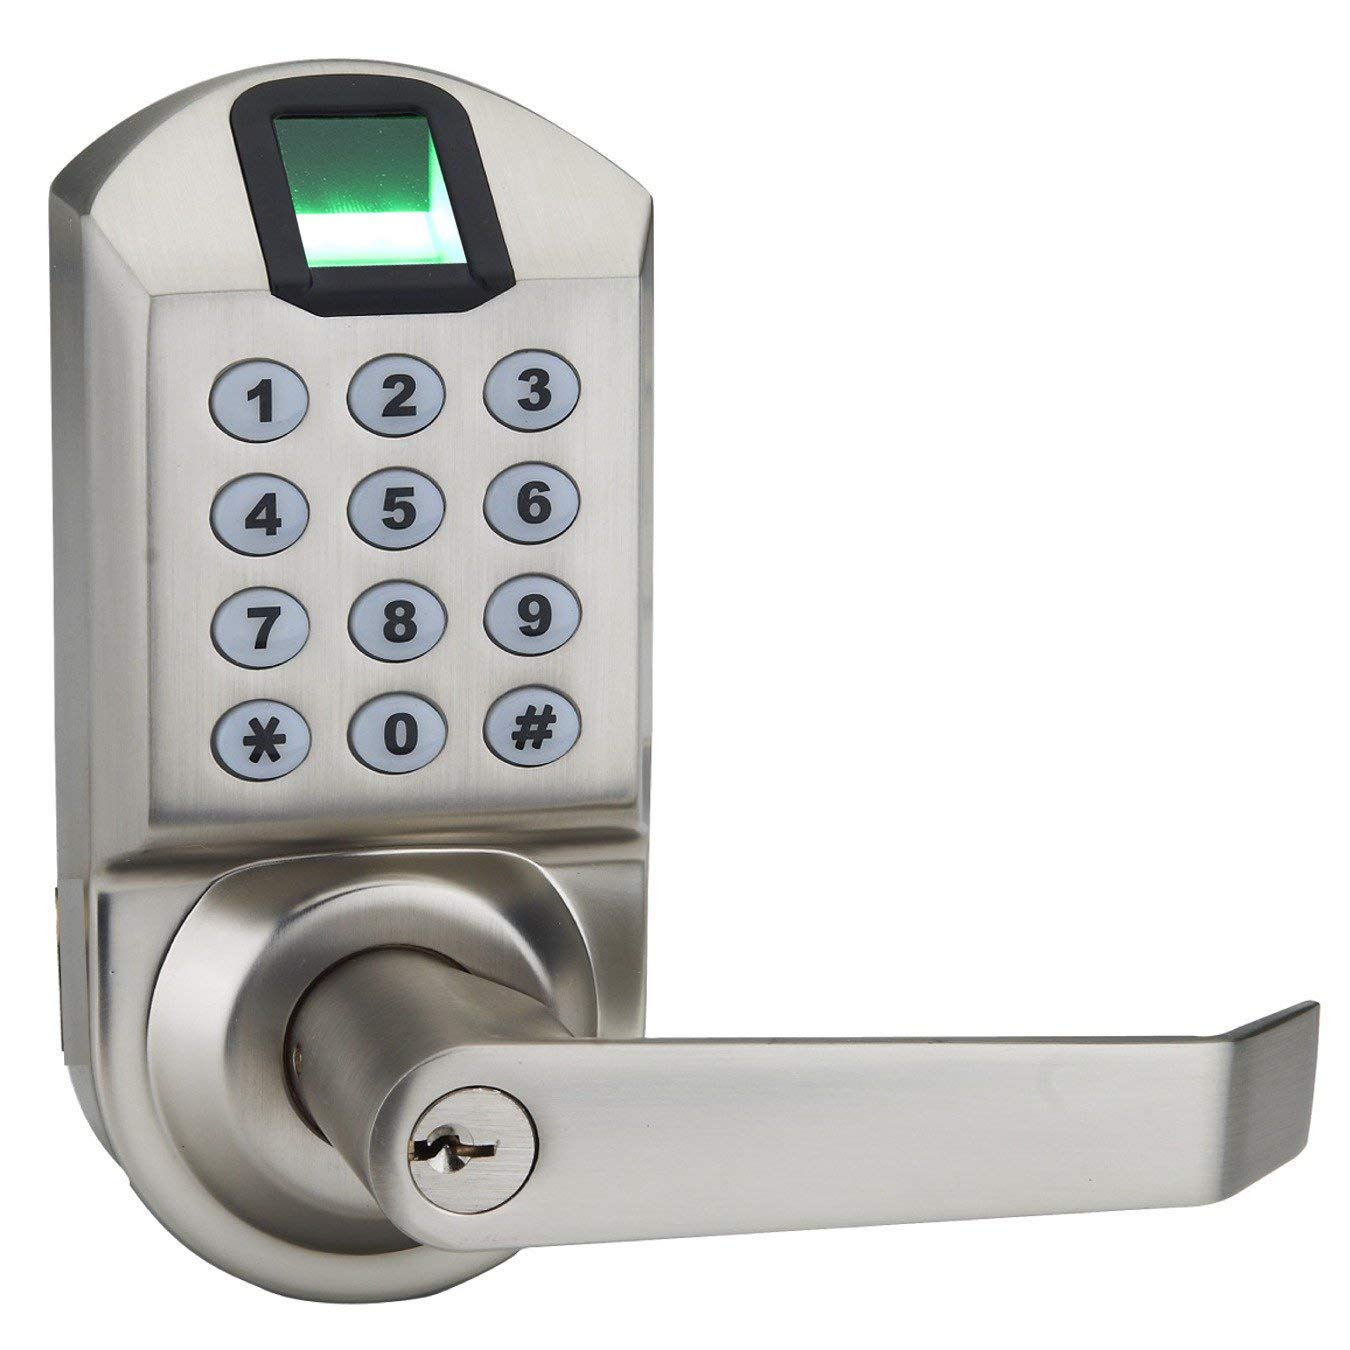 Top 10 Fingerprint Door Locks in 2019 - Highly Recommend in 2019